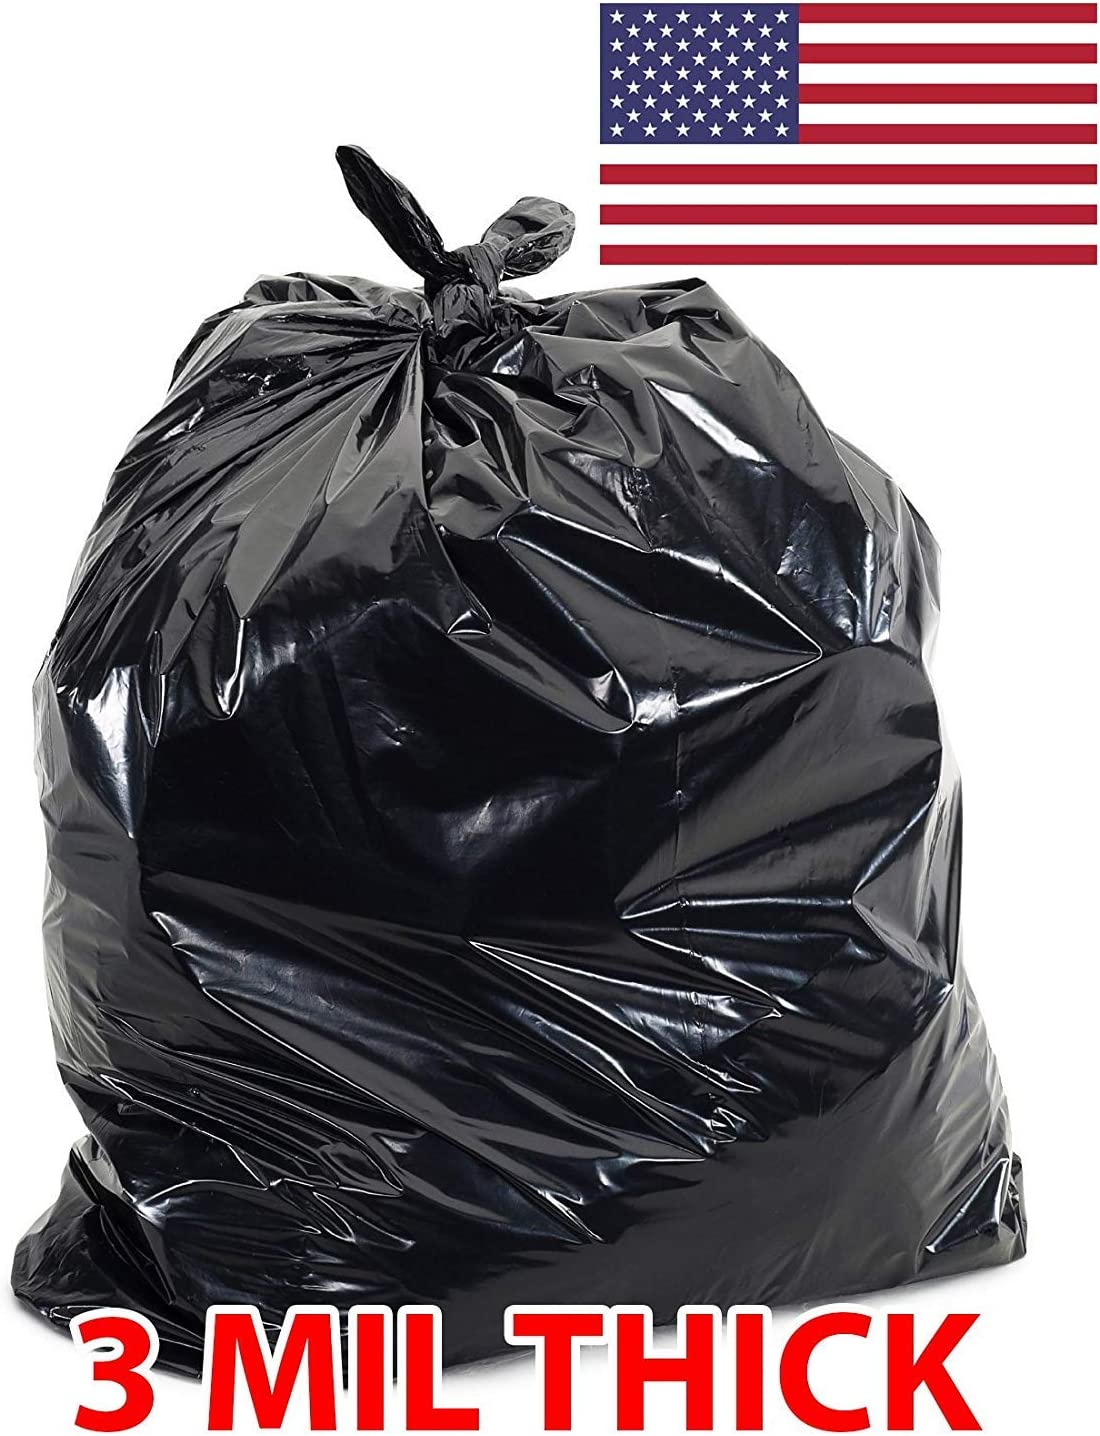 60 Gallon Extra Large Contractor Trash Bags 3 Mil, Durable Heavy Duty, Made in USA, Tough Garbage Bags for Cleanups Drum Liner 3mil (25)-41x55